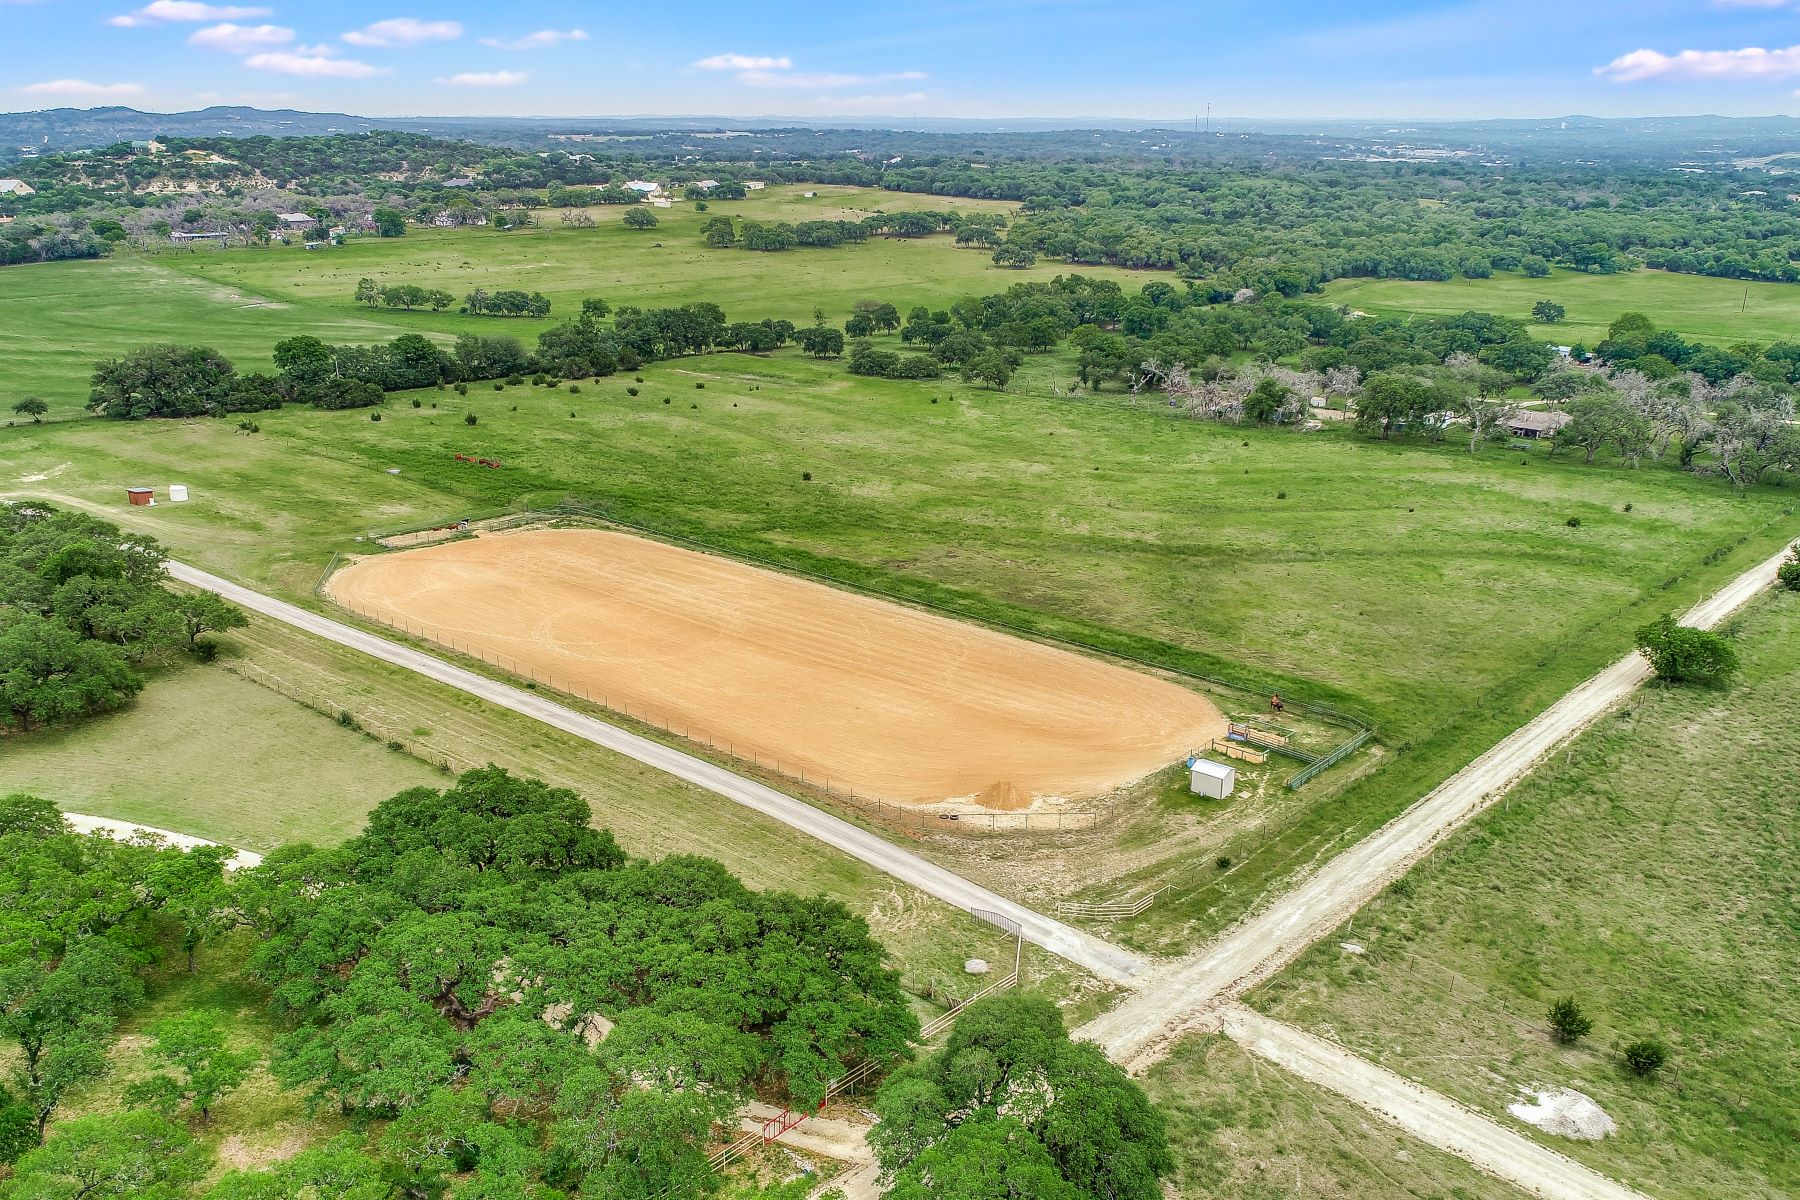 Property for Sale at South Texas Style with Open Concept 113 Spanish Pass Road Boerne, Texas 78006 United States